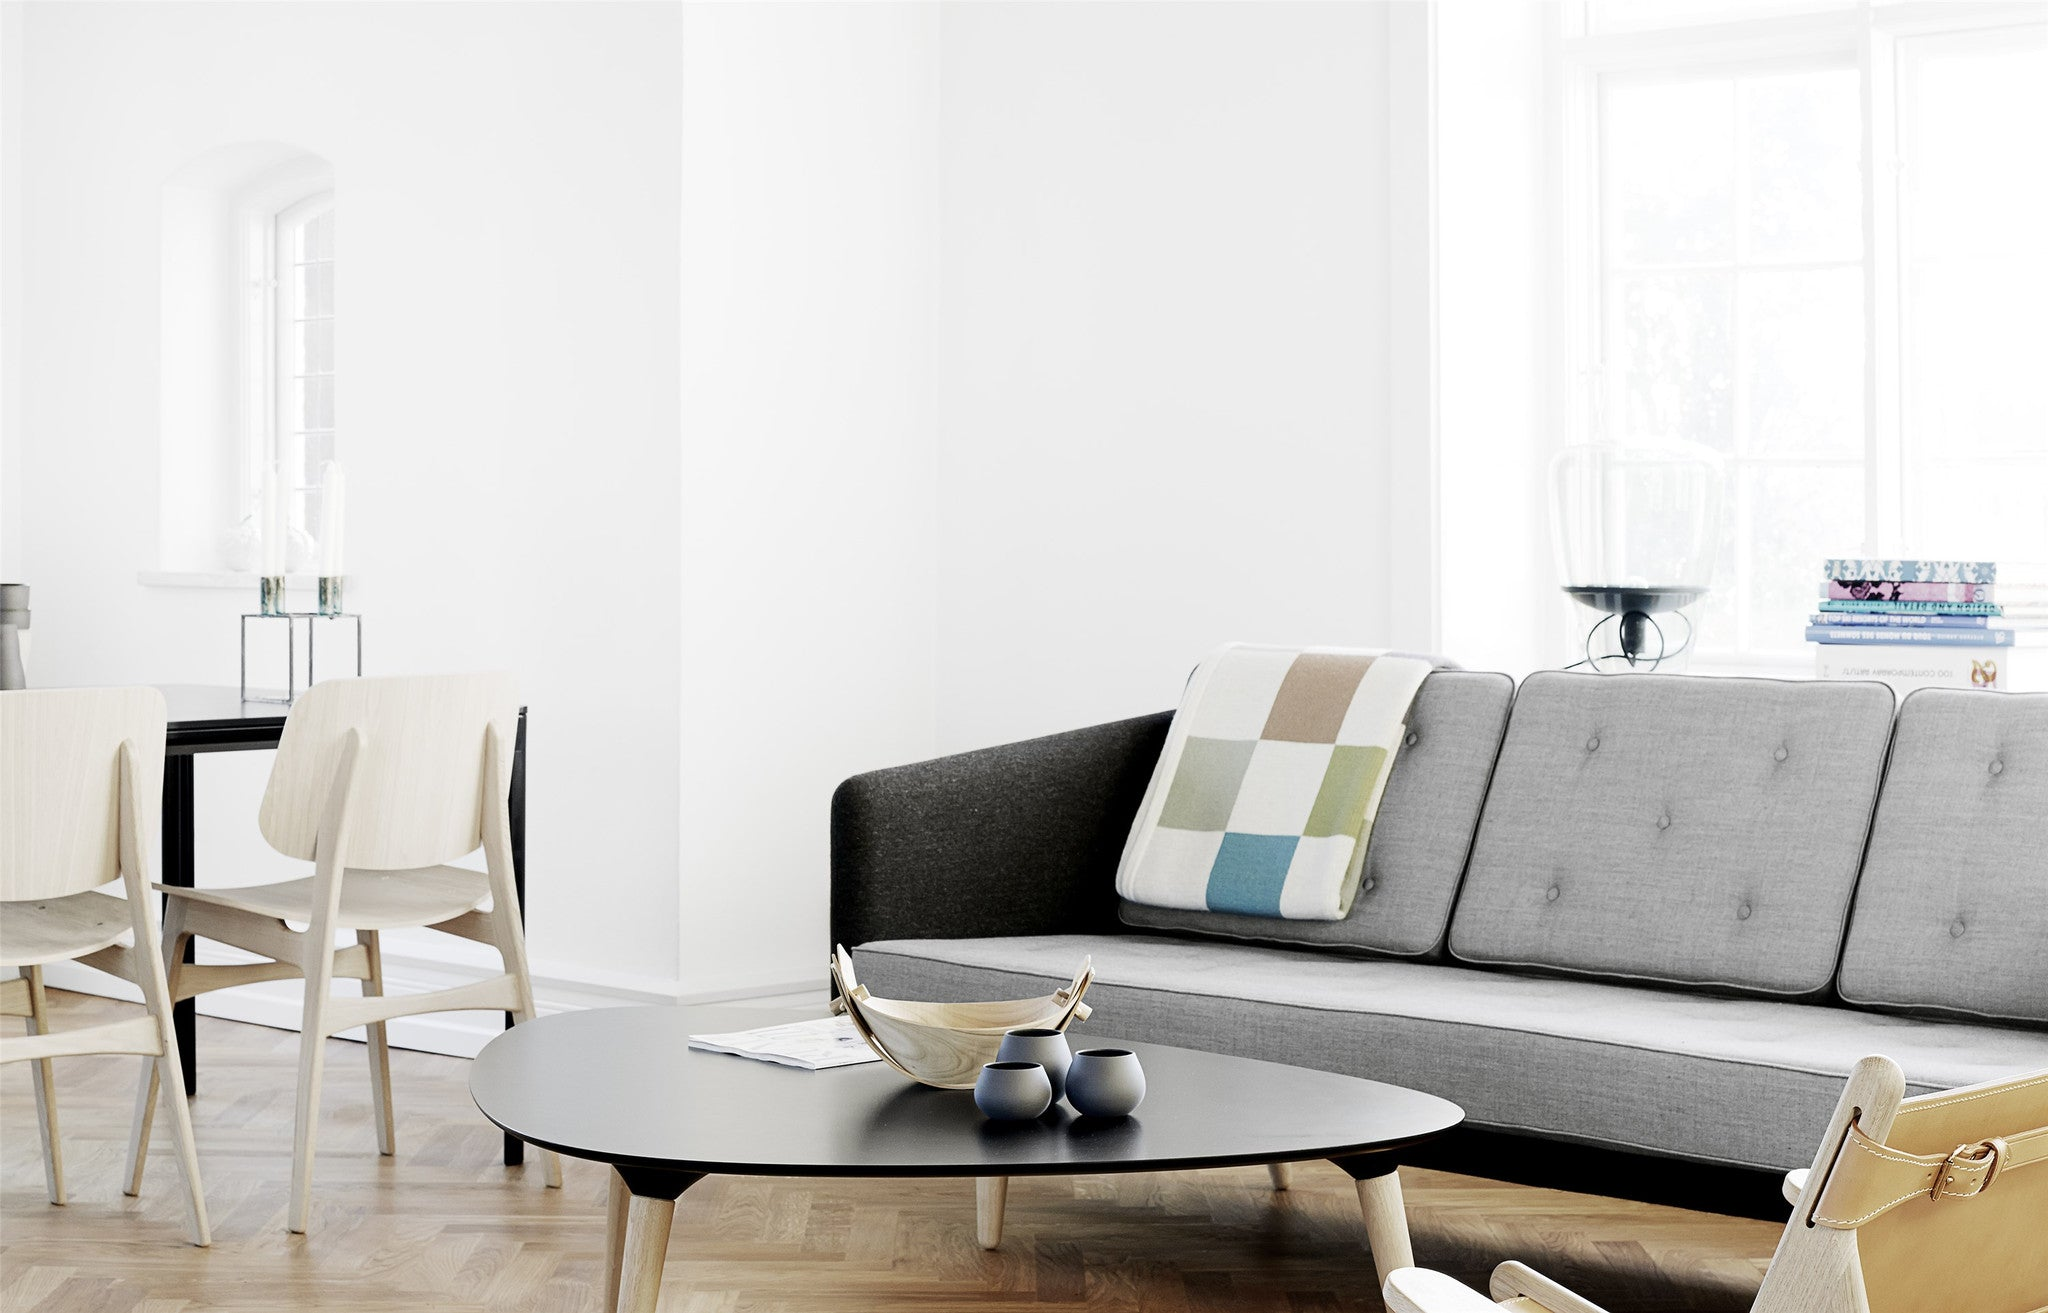 NO. 1 - Fredericia Furniture